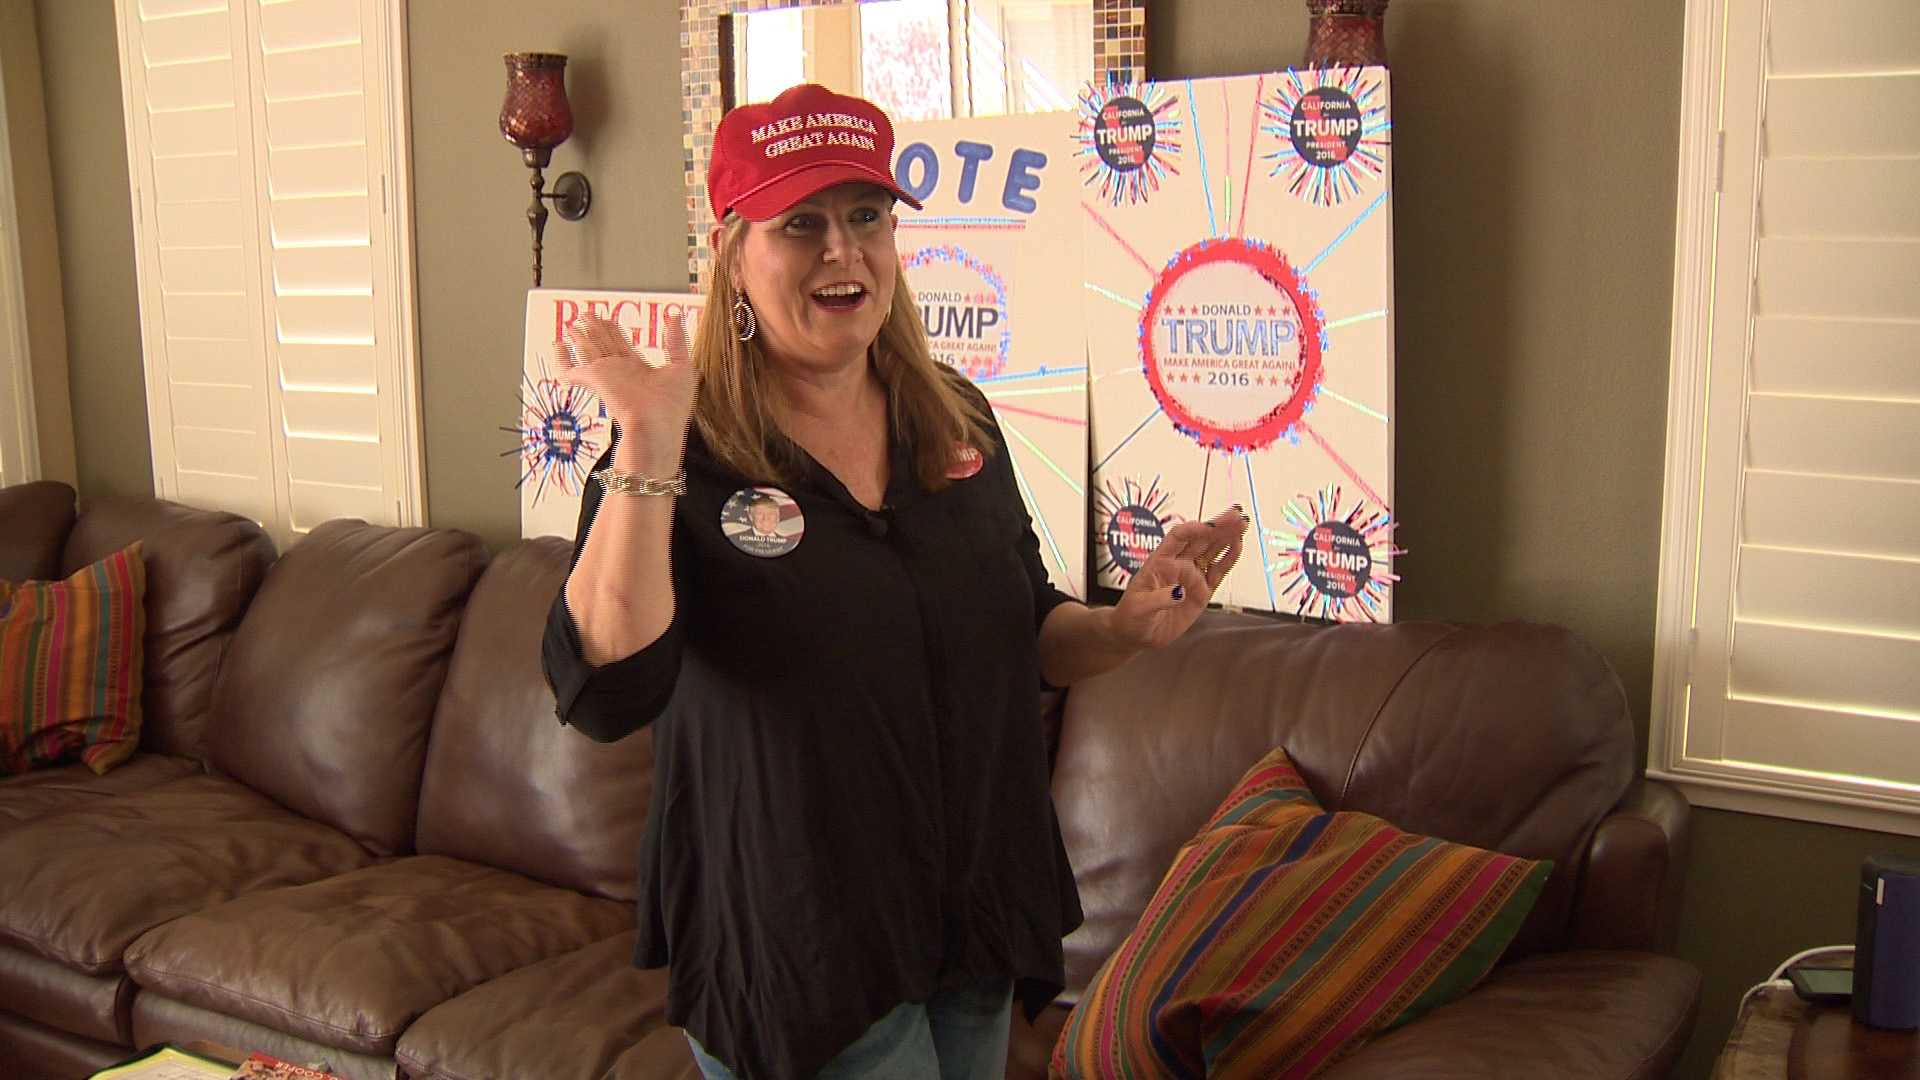 Diana Verba of Roseville said she switched her voter registration to Republican so she can vote for Donald Trump in California's June 7th primary.